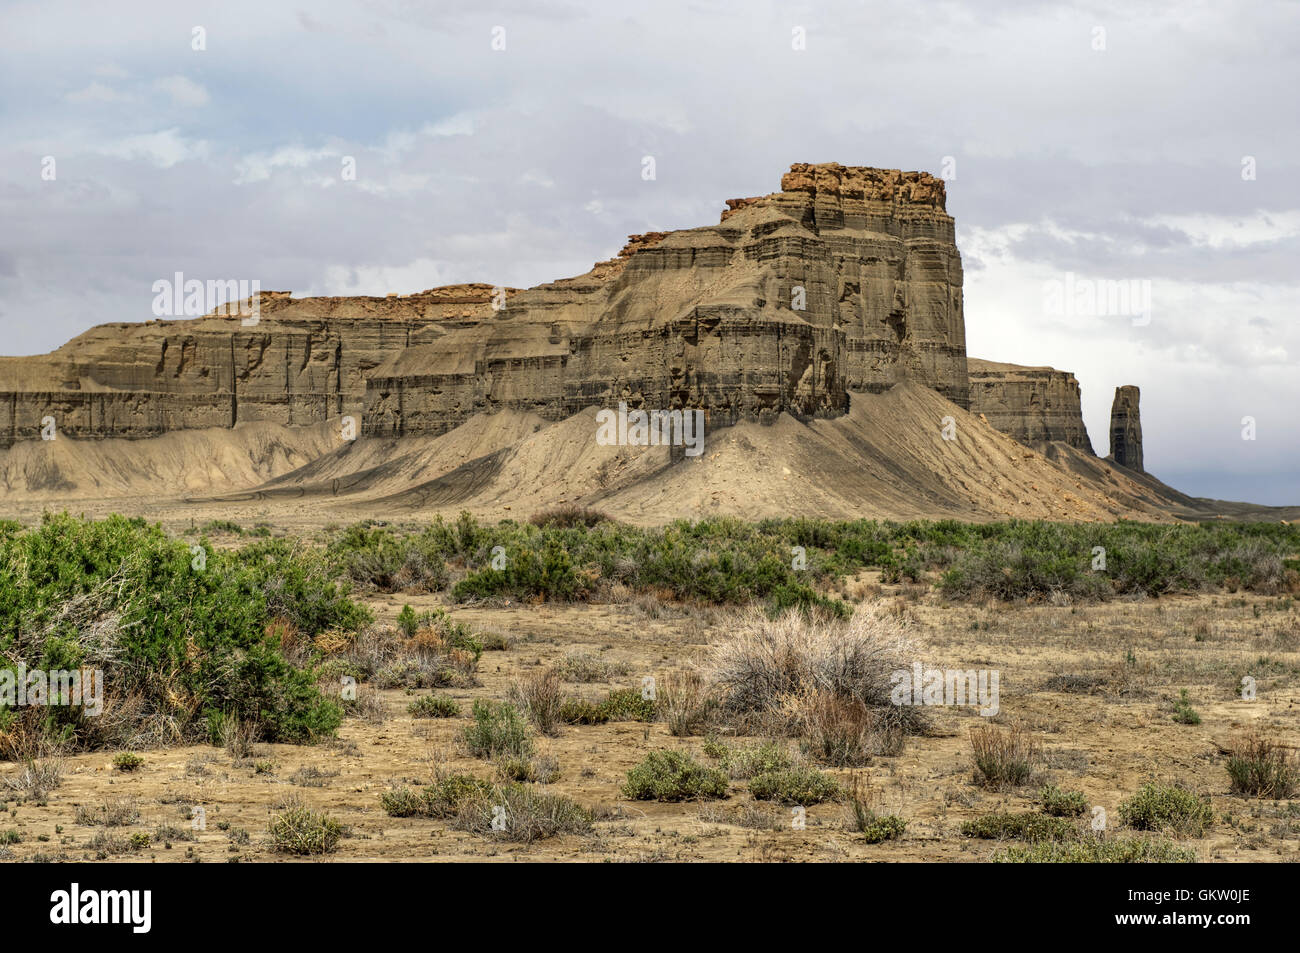 Cliffs of Mancos Shale along Skyline Rim, on the north side of Utah State Route 24 near Caineville. - Stock Image